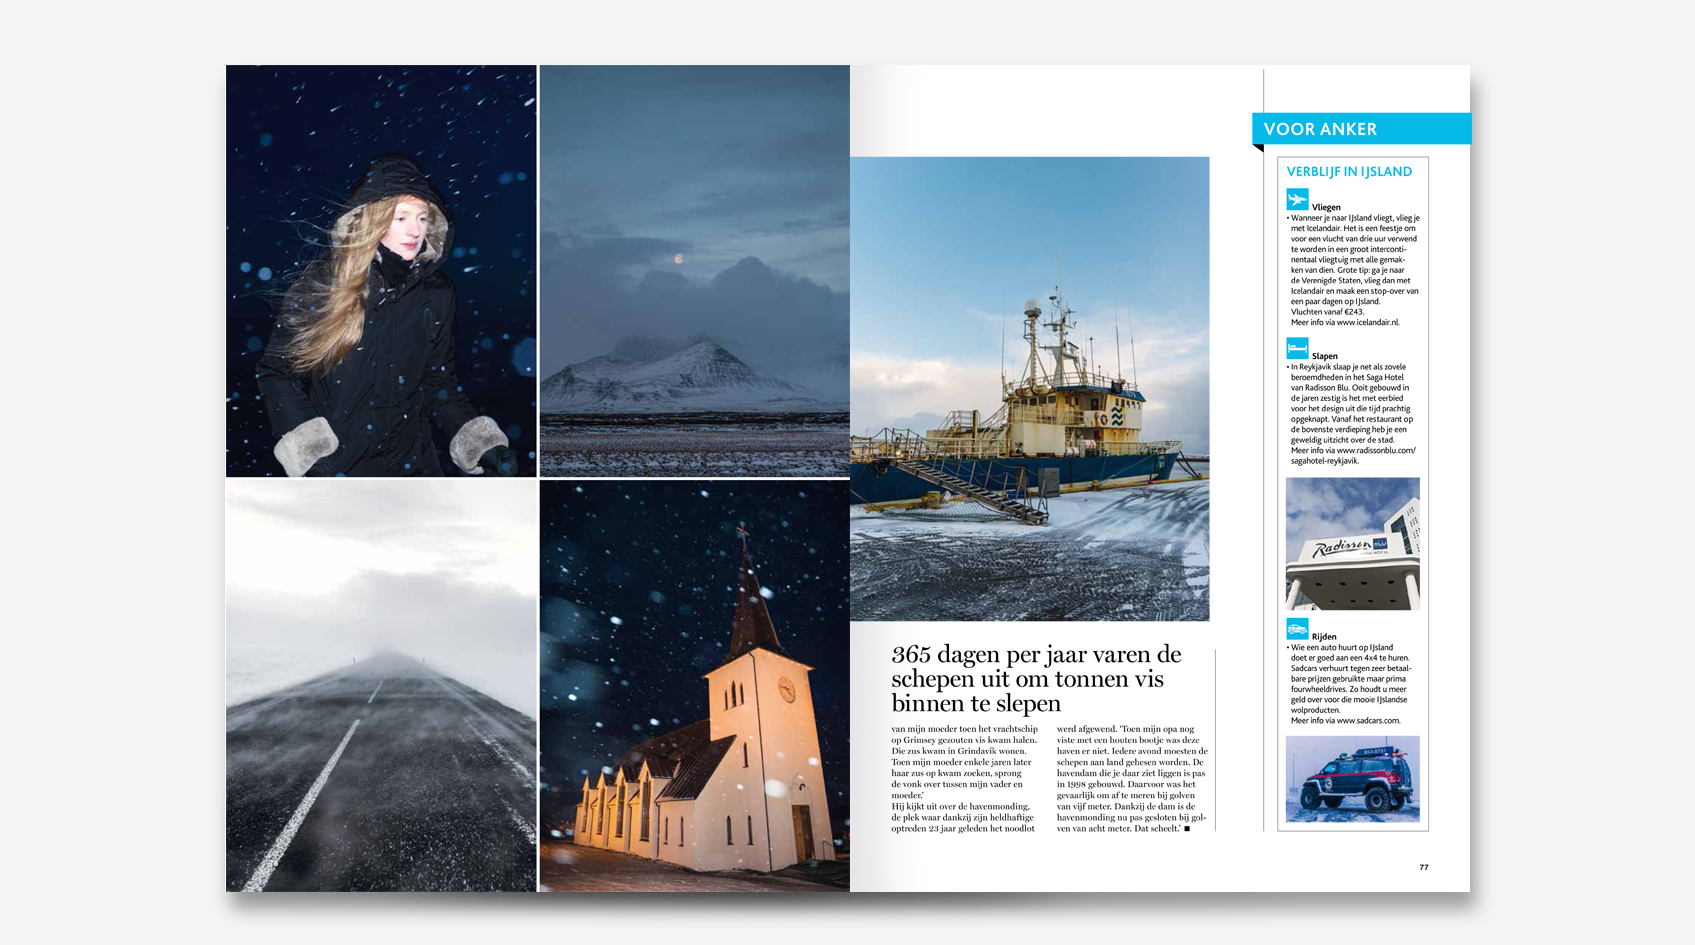 rene_koster_iceland_05.png